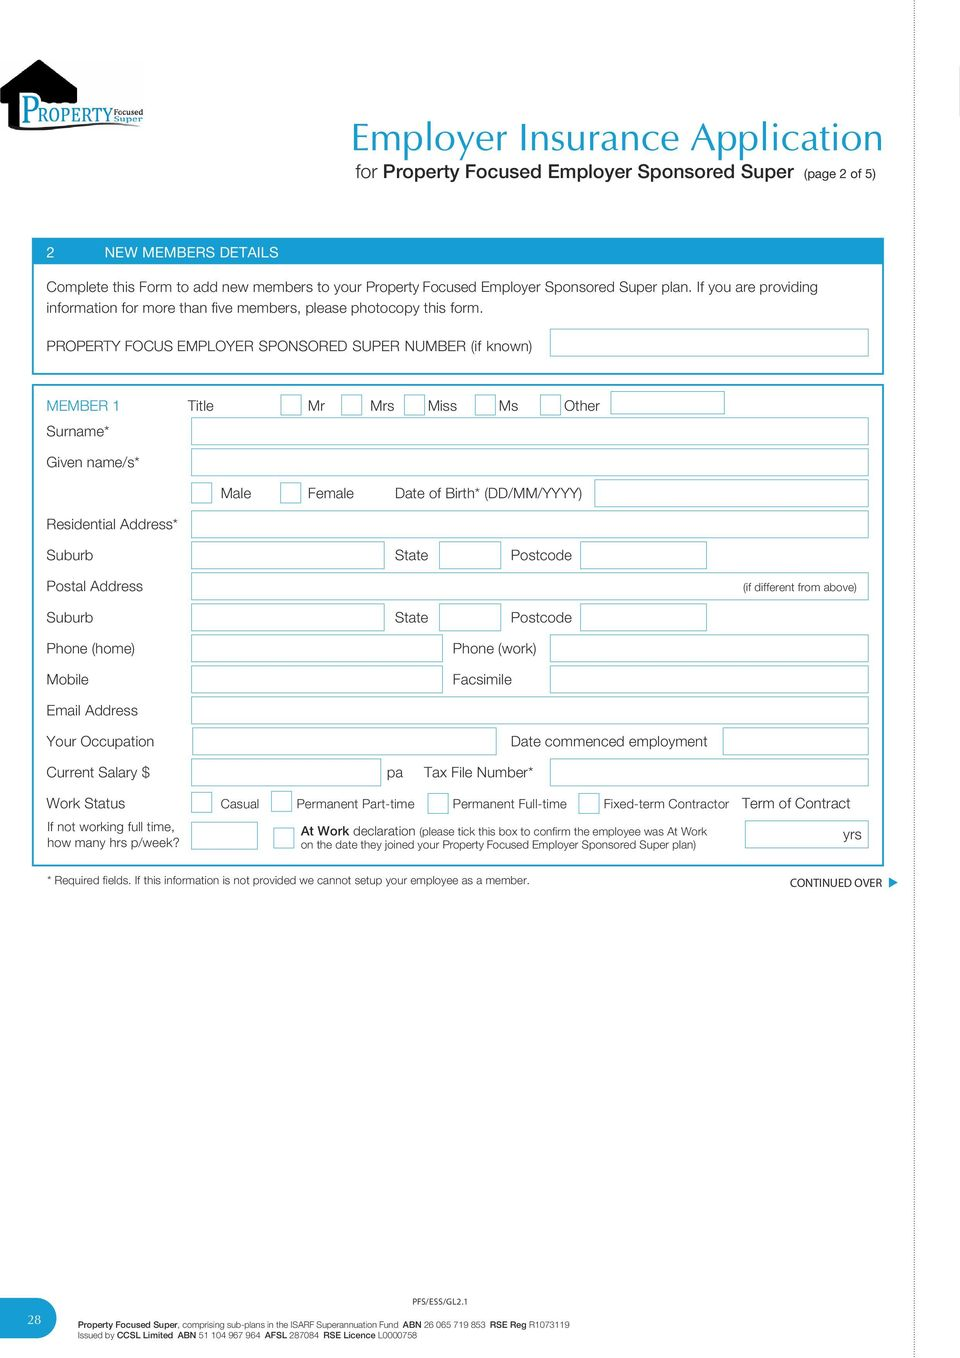 If you are providing information for more than five members, please photocopy this form.